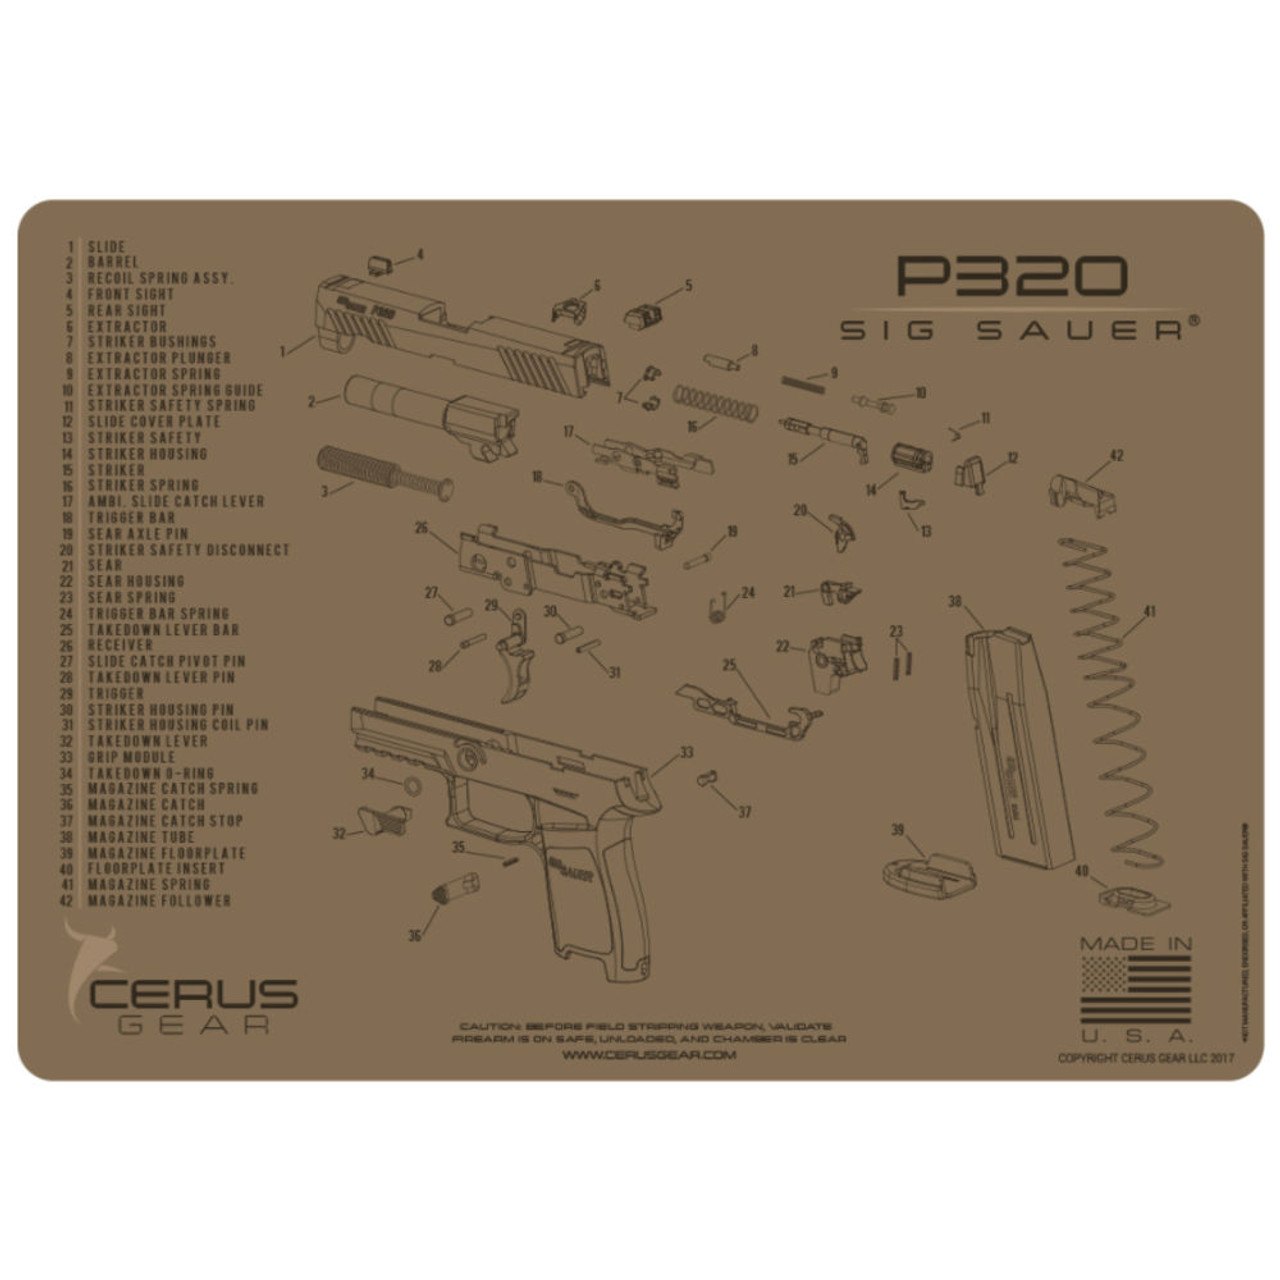 small resolution of sig saure p 320 part diagram